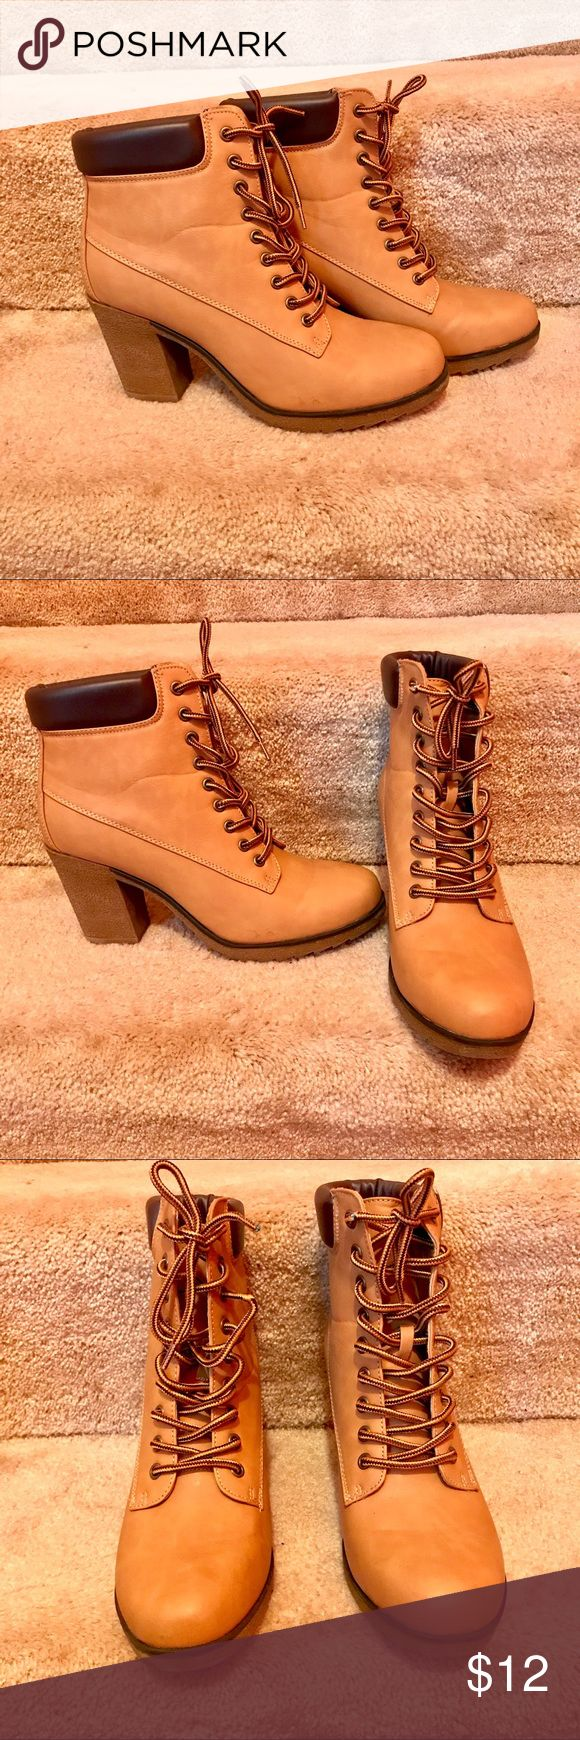 Women's Wheat Heeled Boots These fashionable and super comfortable heeled wheat boots are perfect all year round! Rock them with some long tapered or skinny legged pants or throw them on with some denim shorts. You can't go wrong!*Only worn twice!* Manic Shoes Lace Up Boots